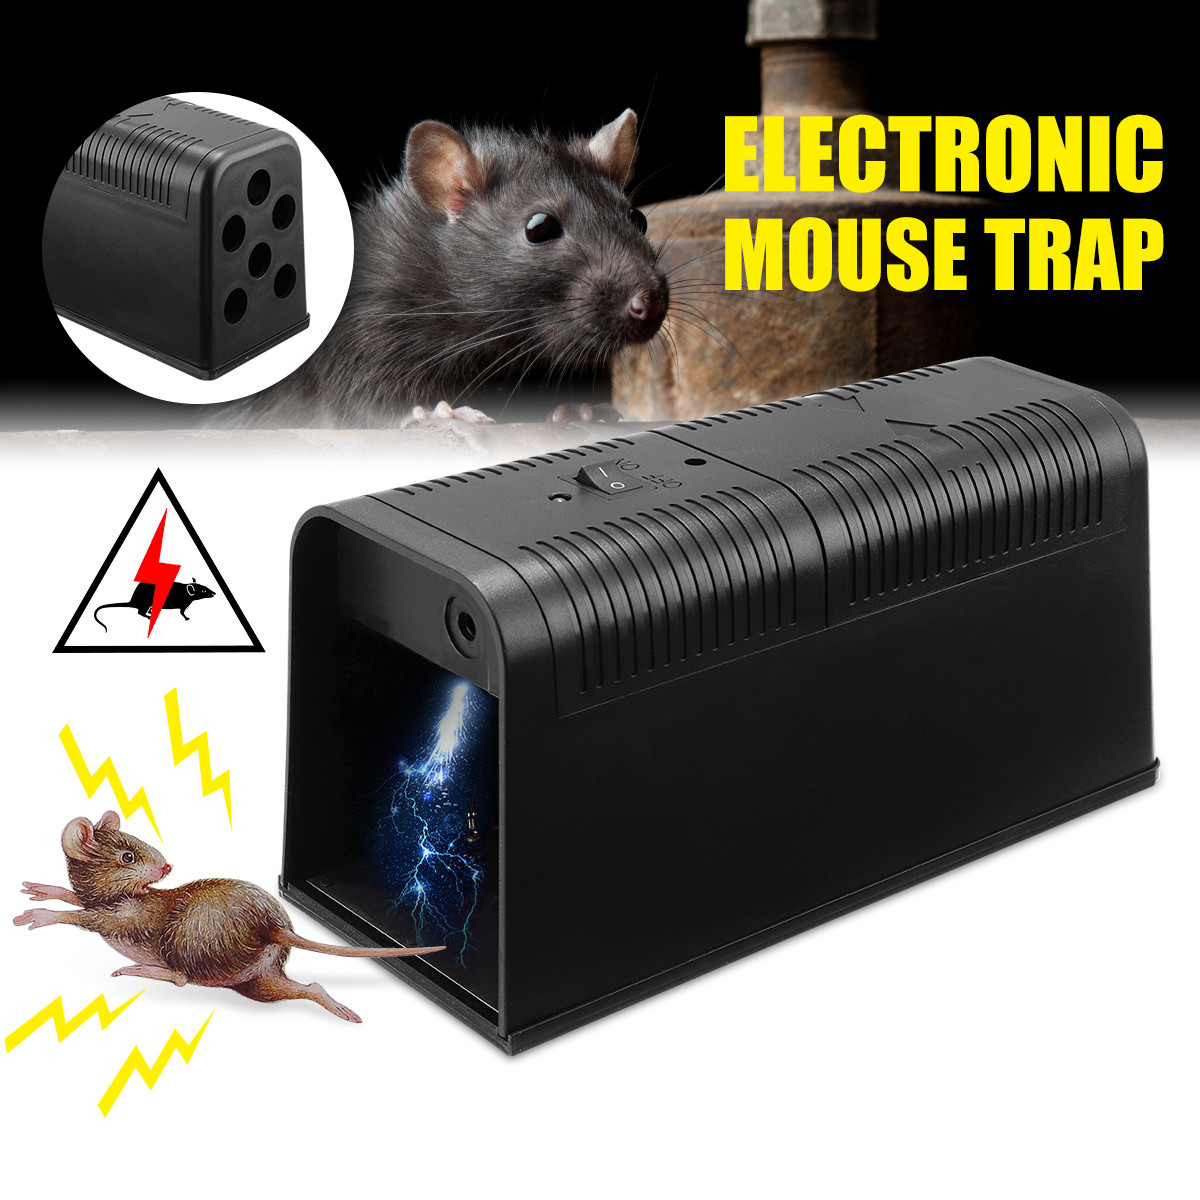 Electric Mouse Rat Trap Mouse Killer Electronic Rodent Mouse Zapper Trap Humane Rodent Mousetrap Device 235X102X113MM DC6V